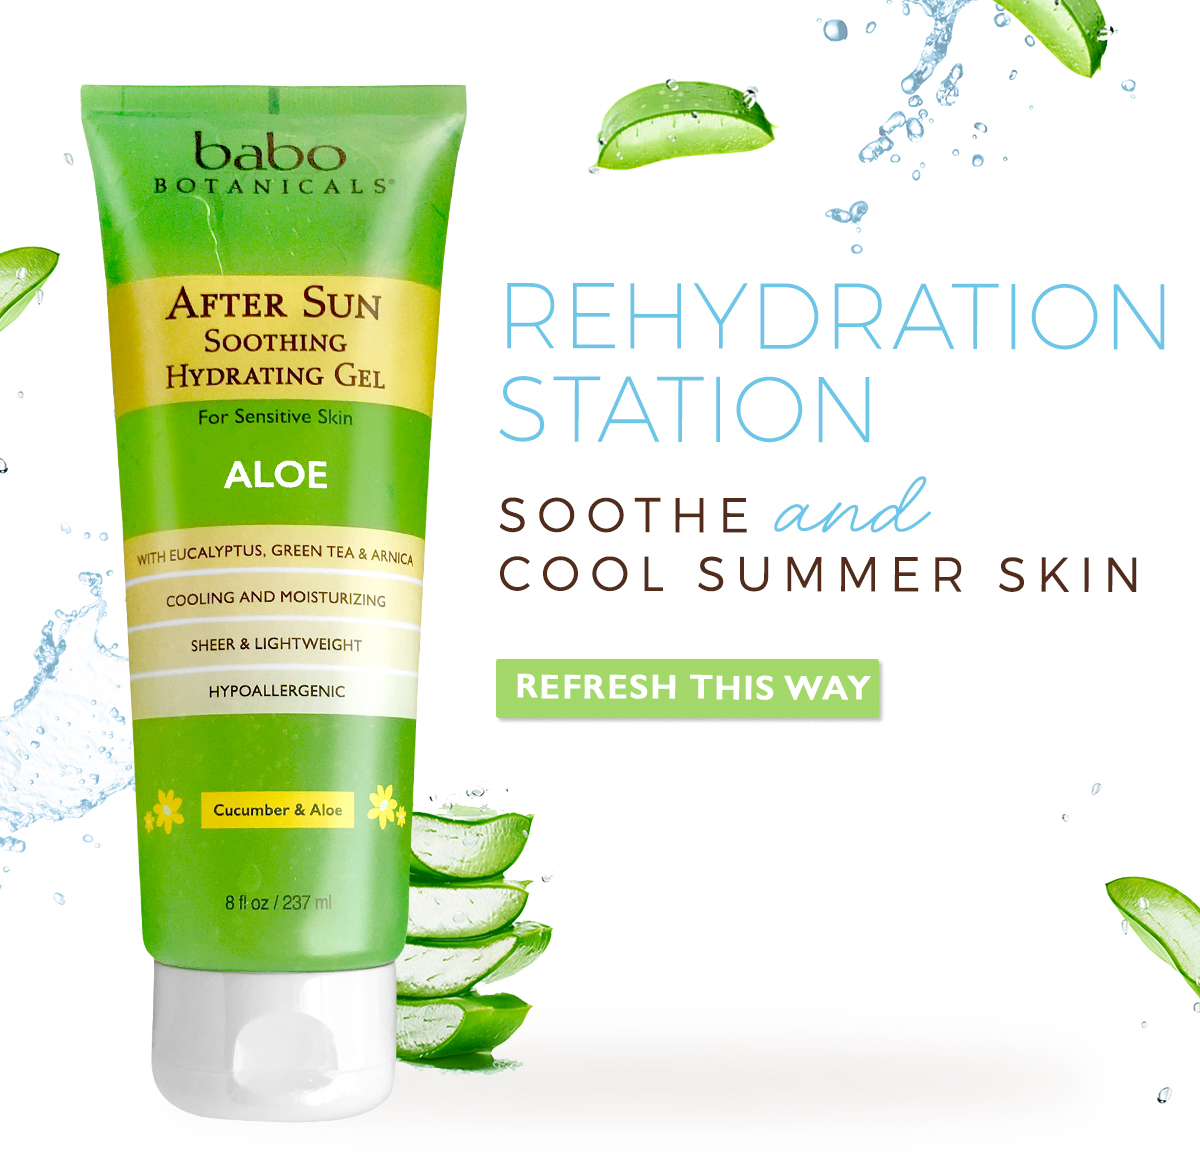 REHYDRATION STATION | Soothe and cool summer skin | Refresh This Way